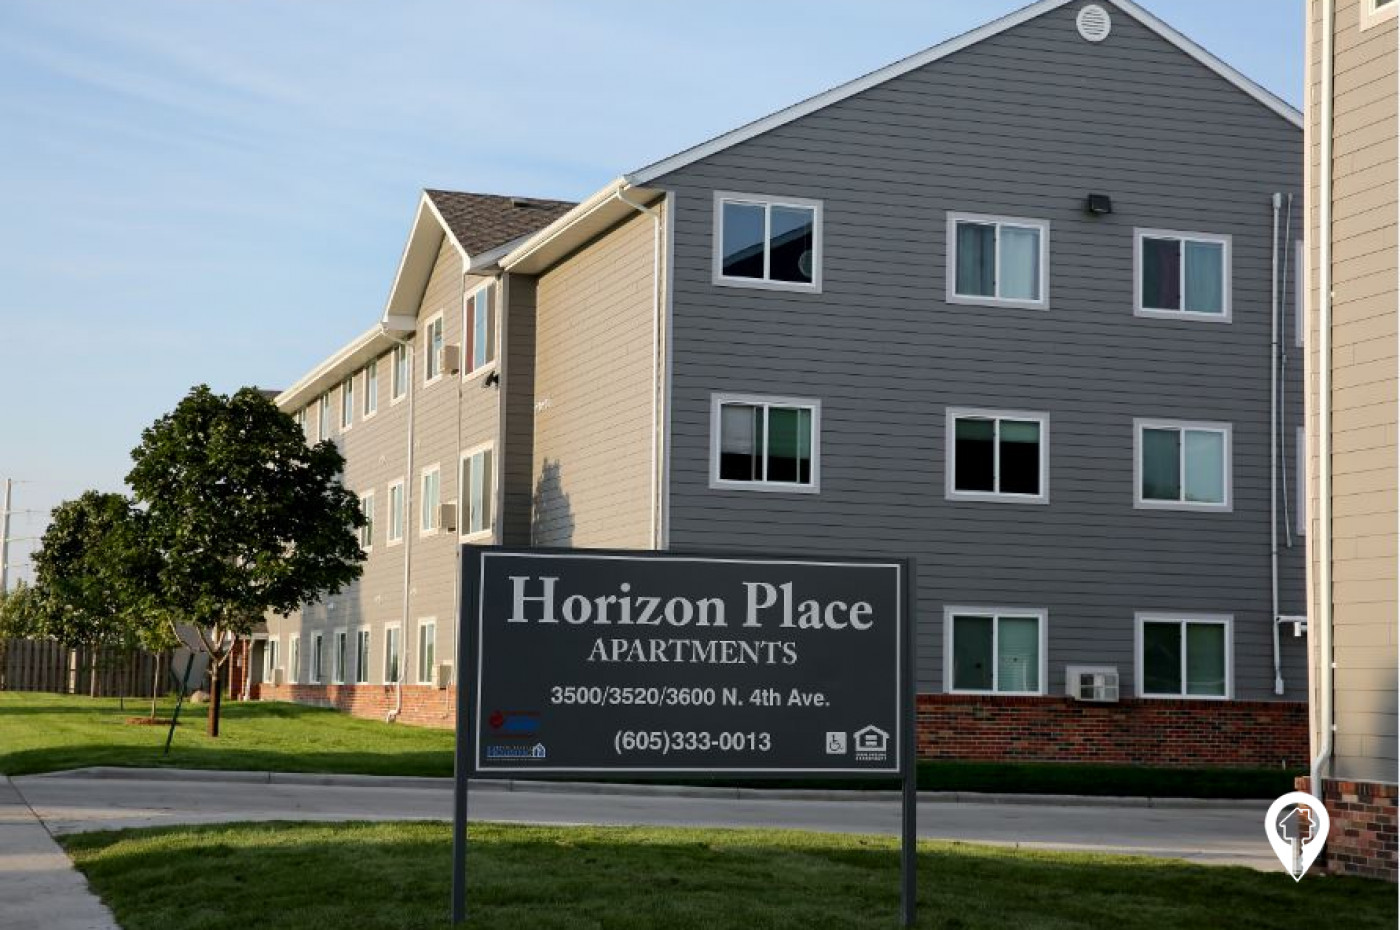 Horizon Place Apartments